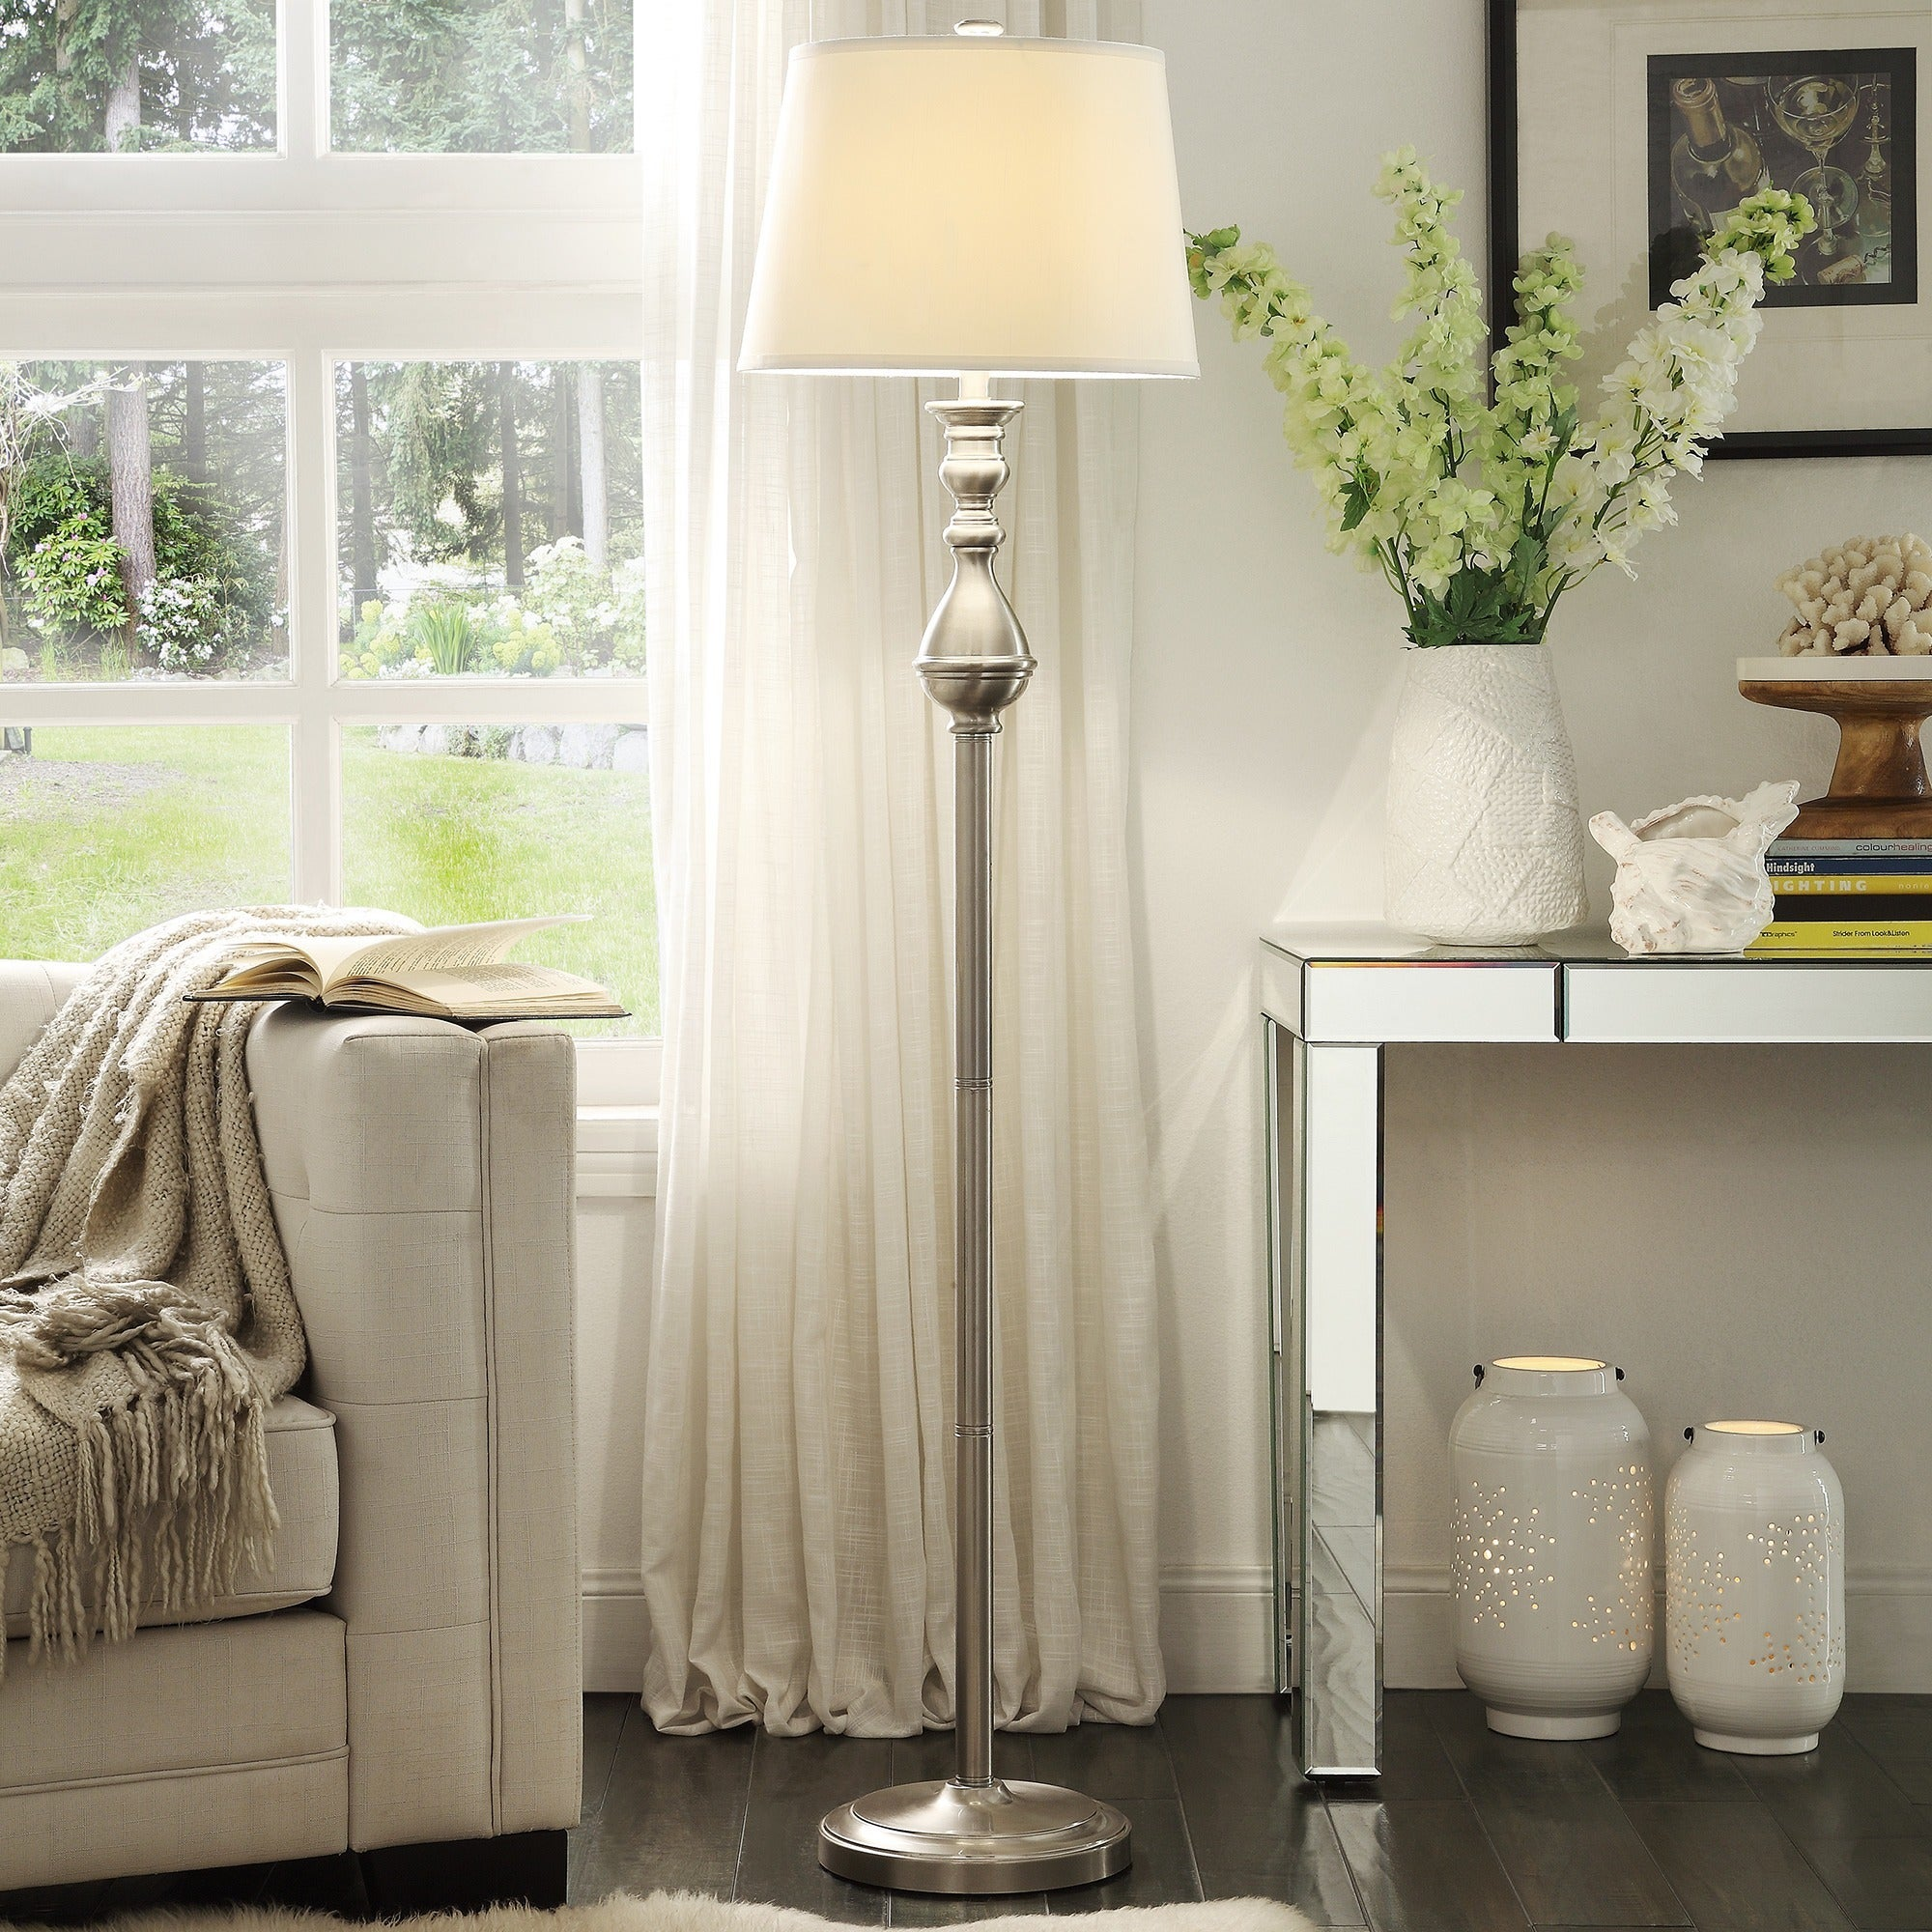 Sedgwick 3-way Satin Nickel Contoured Base 1-light Accent Floor Lamp by  iNSPIRE Q Bold - Free Shipping Today - Overstock.com - 16984254